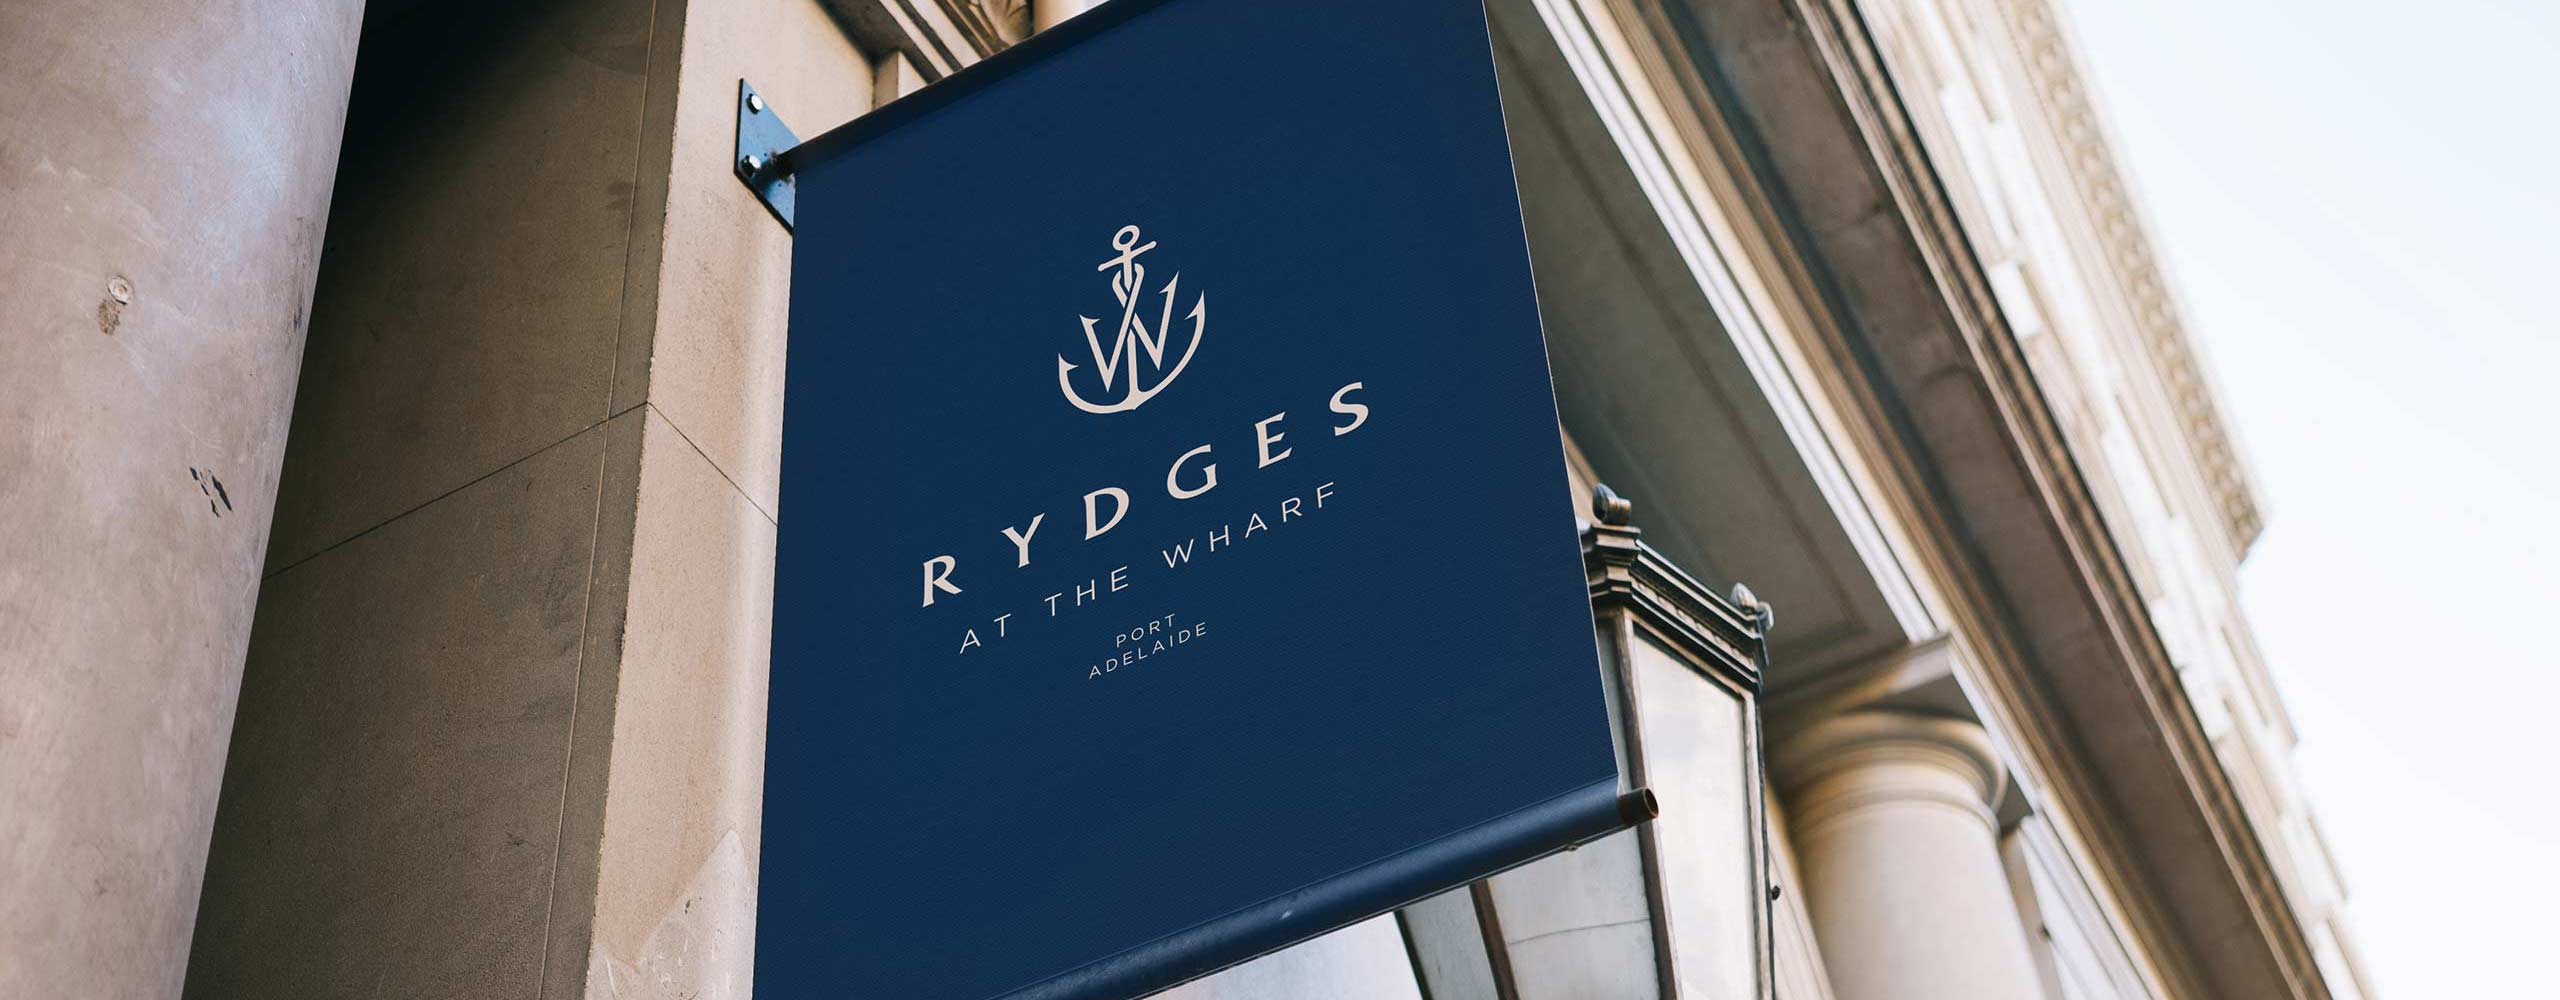 RYDGES at the Wharf Port Adelaide